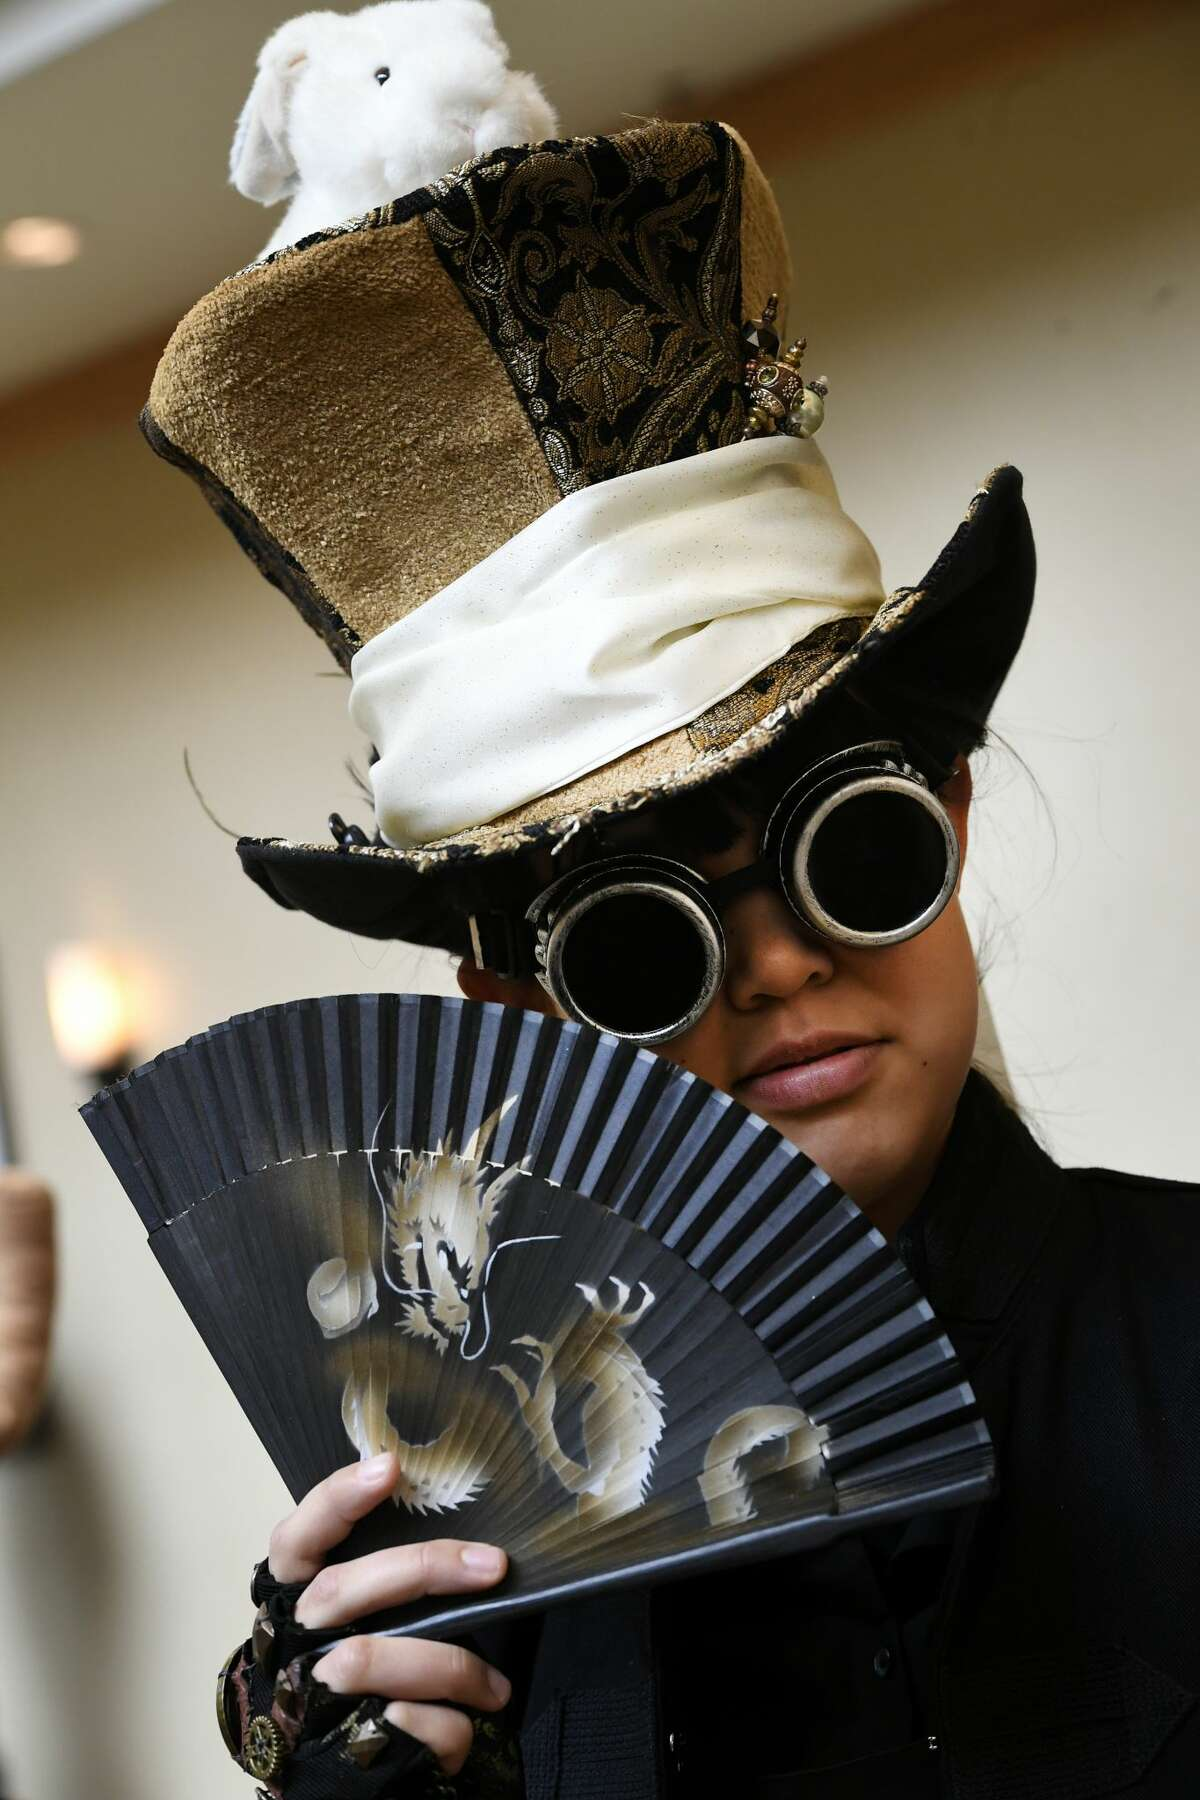 Jennifer Brunkhorst dresses up in steampunk style during the 2nd annual Colorado Anime Festival at the Renaissance Denver Stapleton Hotel on March 26, 2017 in Denver, Colorado.